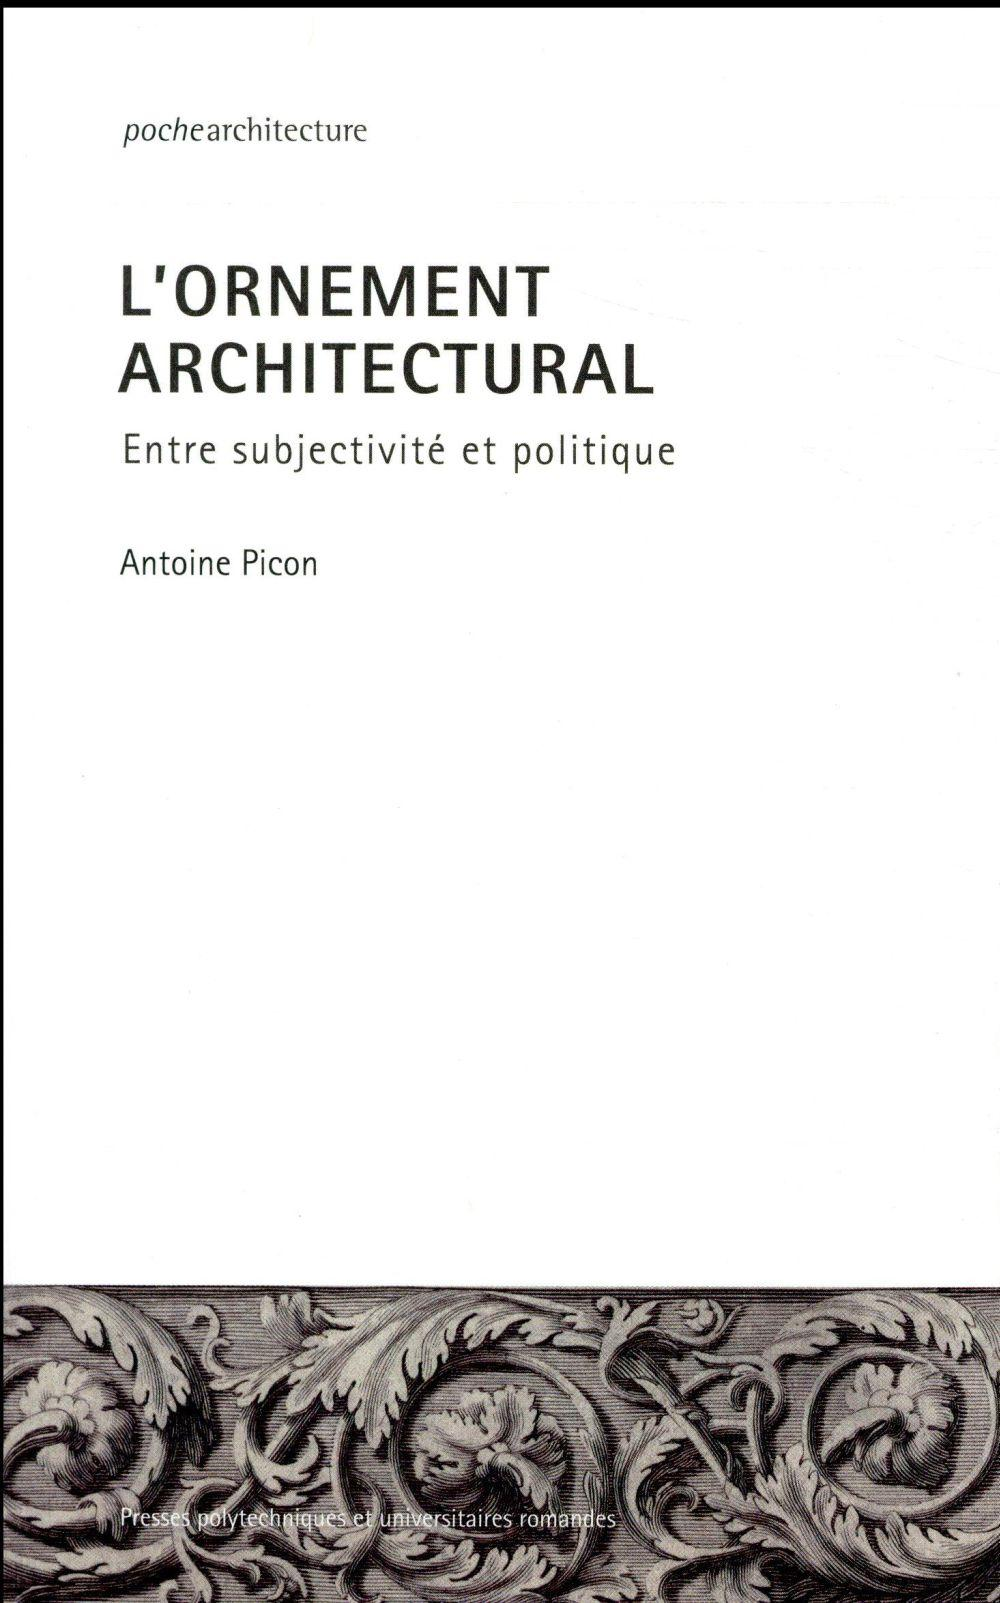 L'ornement architectural ; entre subjectivité et politique  - Antoine Picon